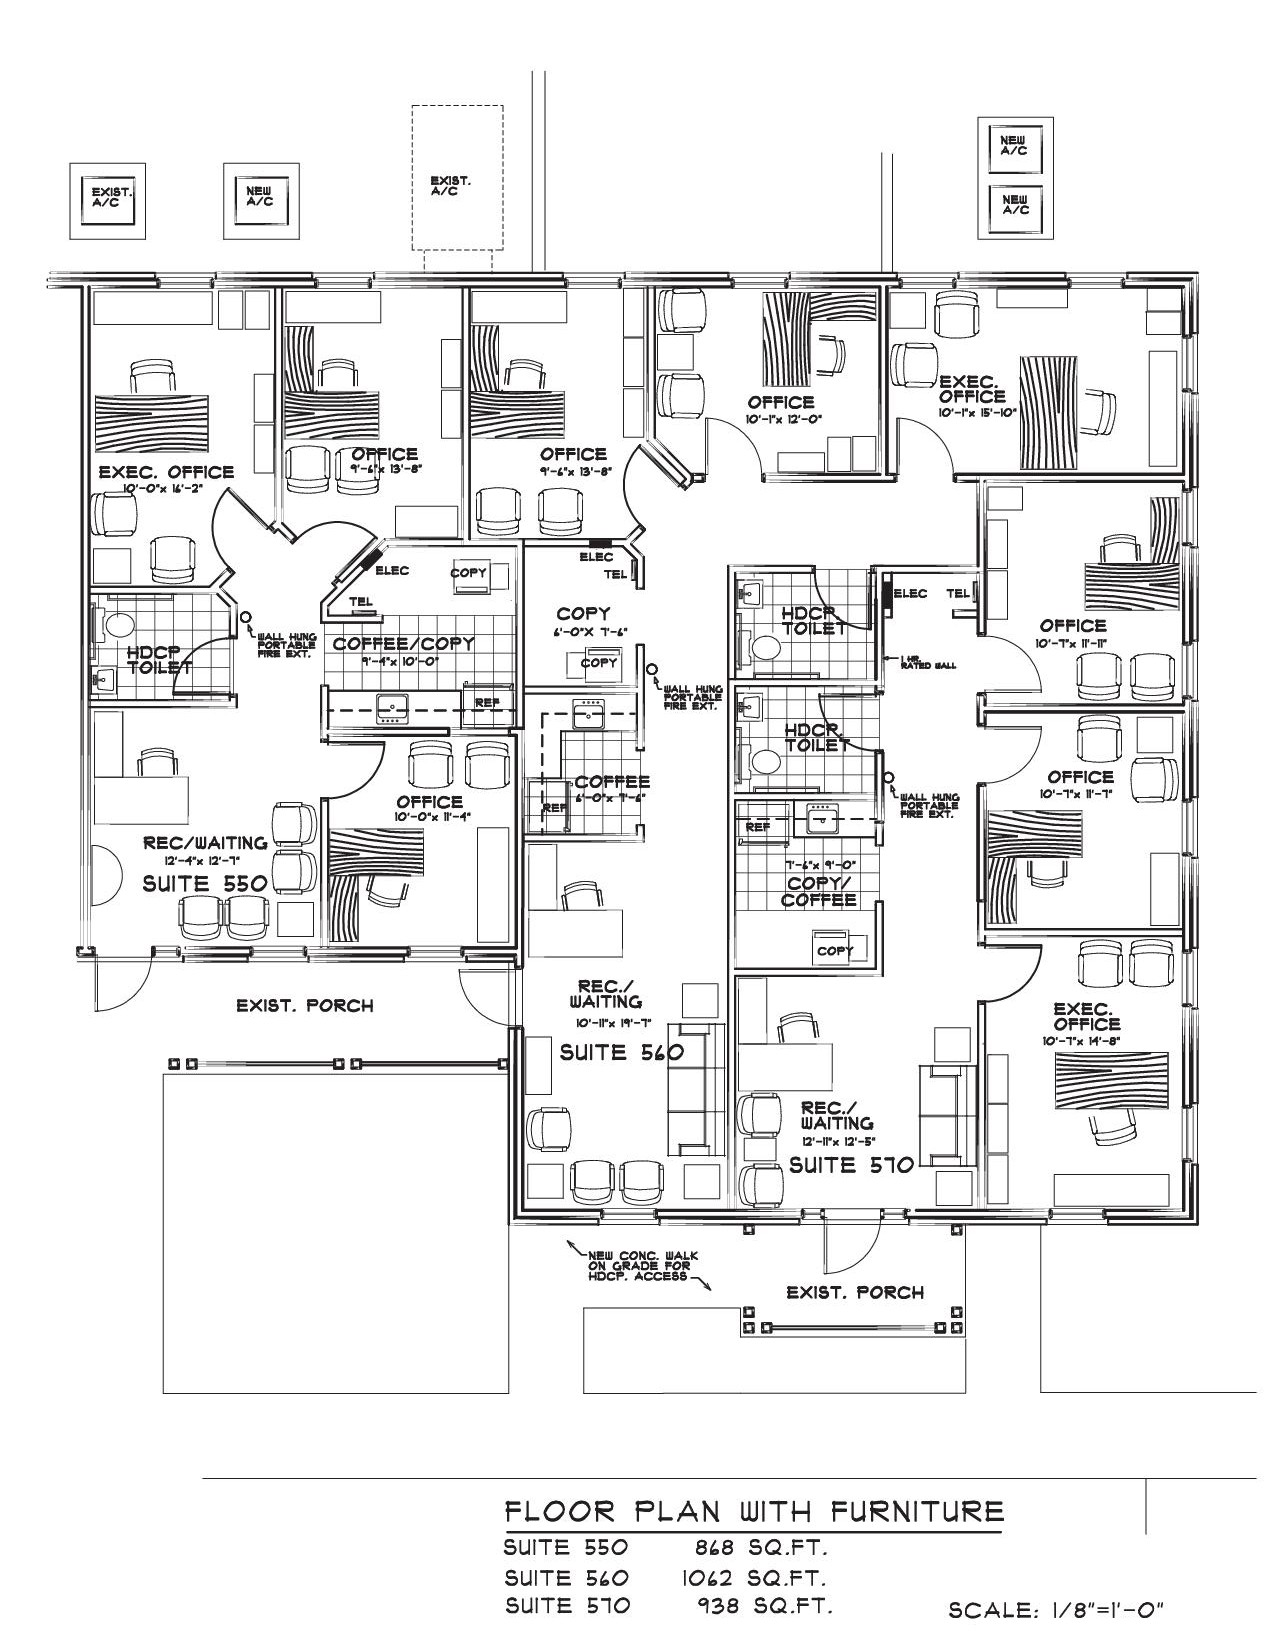 Heritage place office lease space lease space design for House plans with separate office entrance